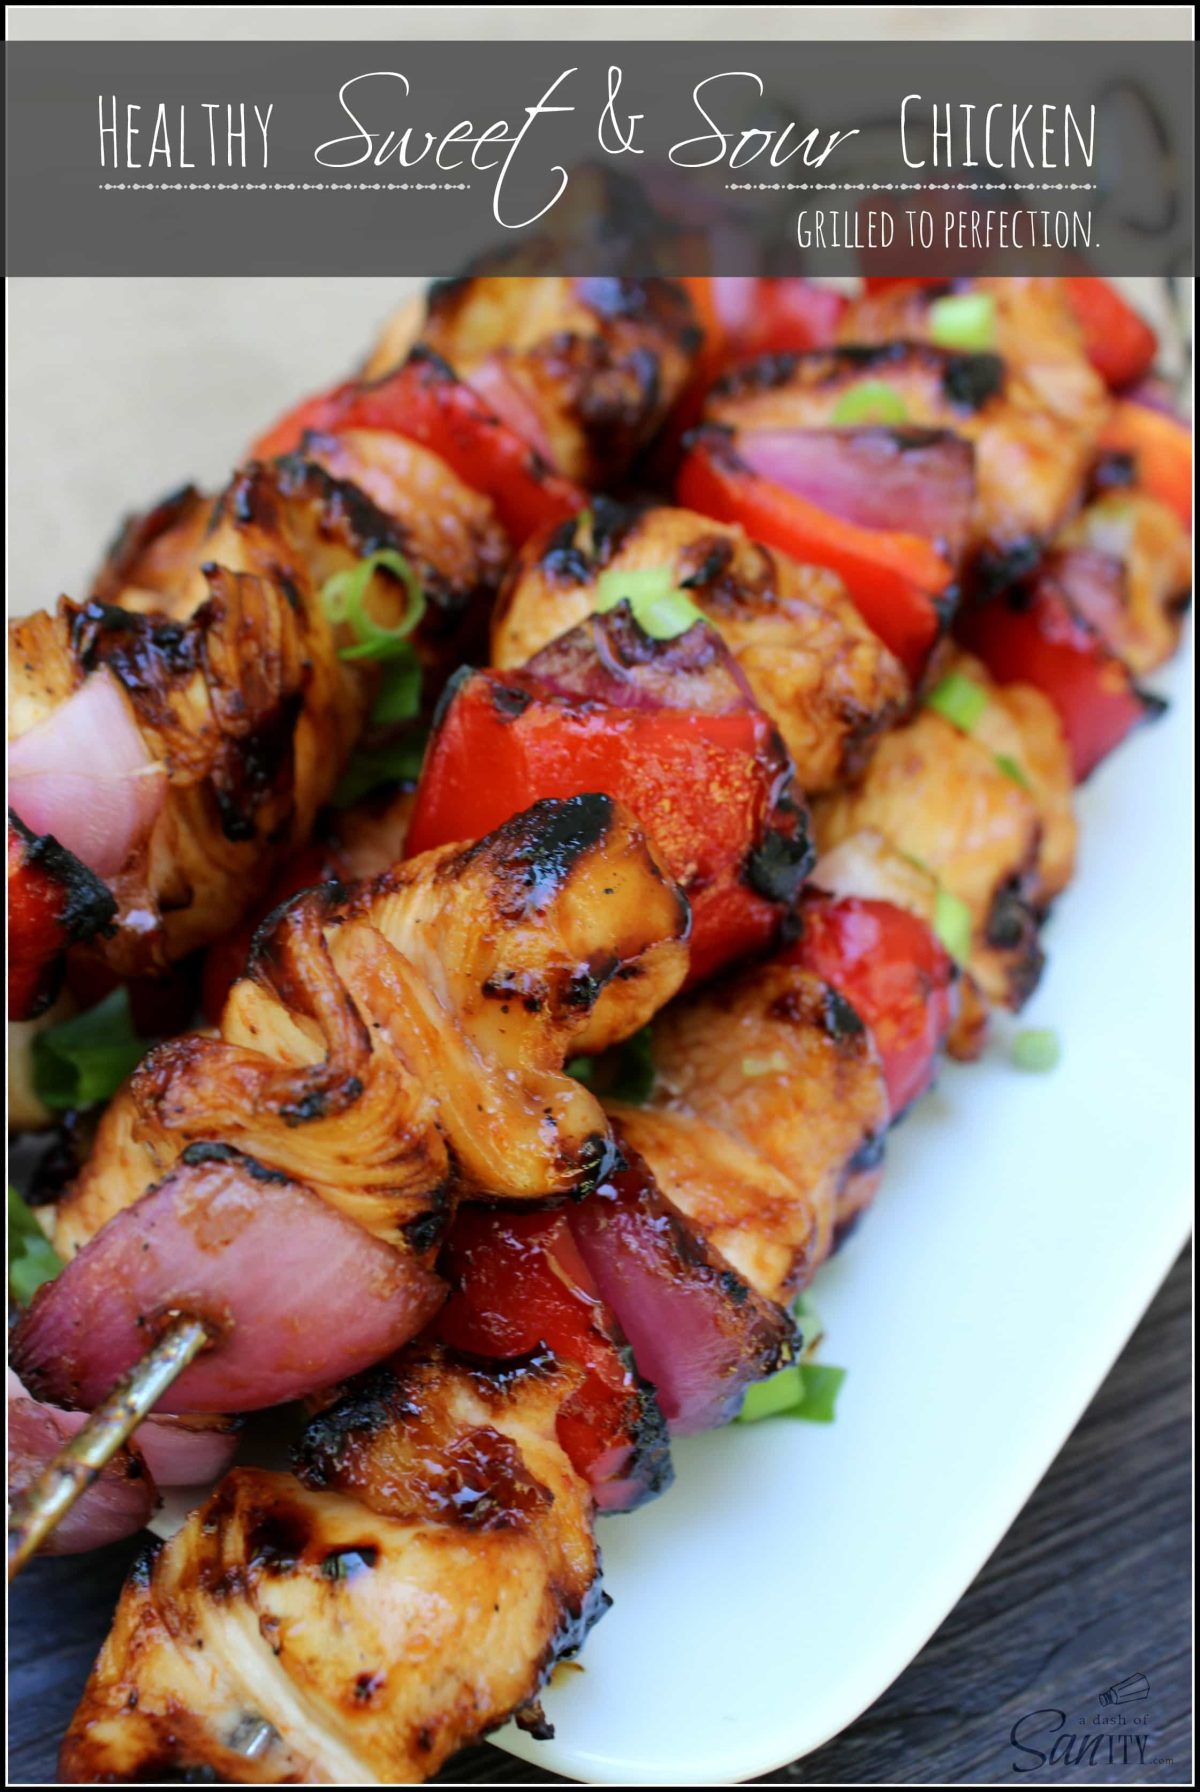 Healthy Sweet & Sour Chicken | Grilled to perfection.